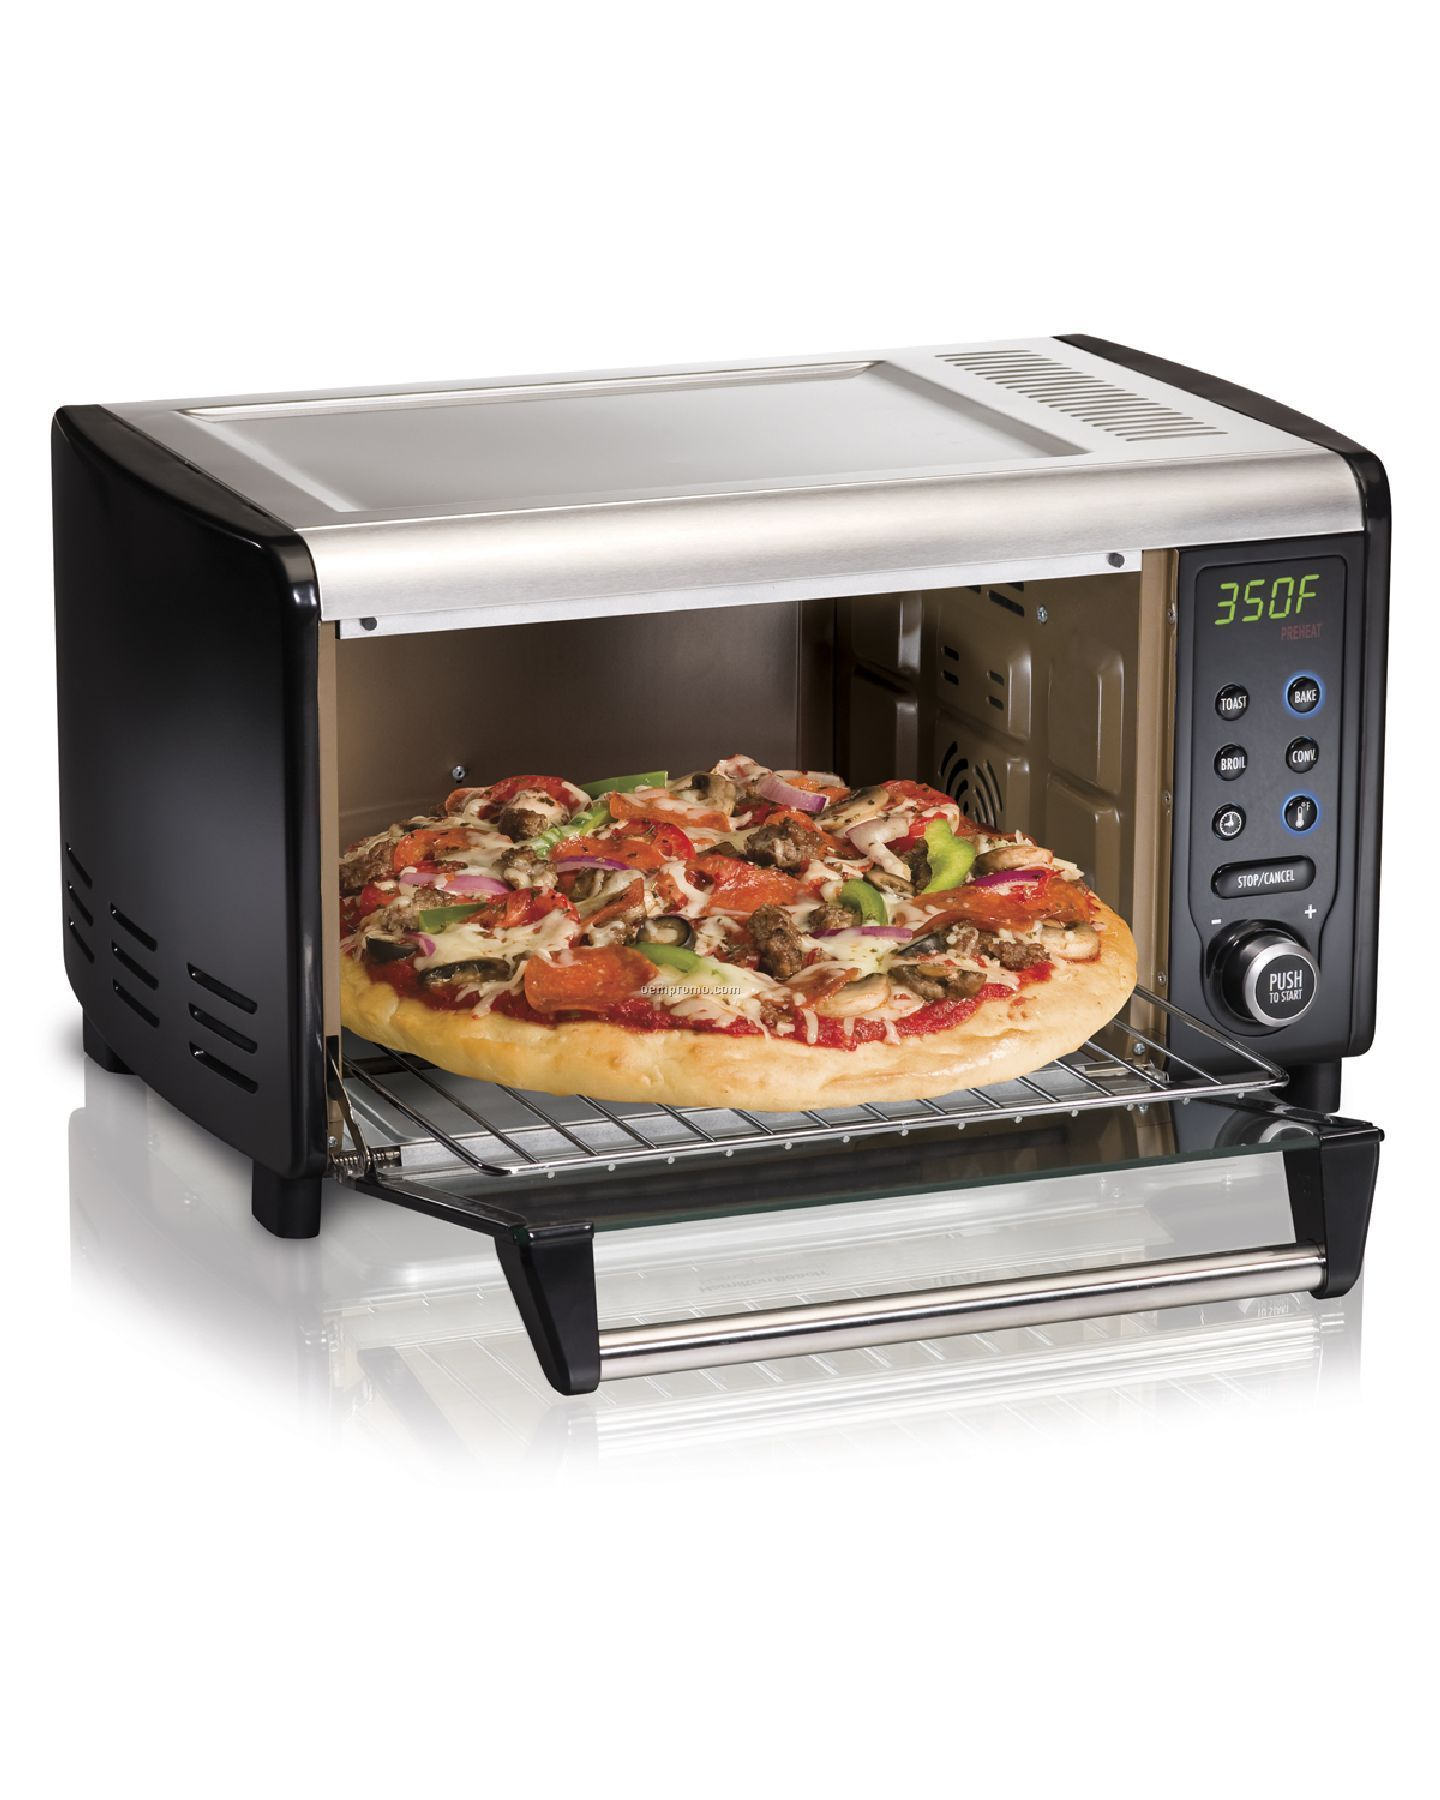 China Electric Oven Toaster Oven: Digital Toaster Oven,China